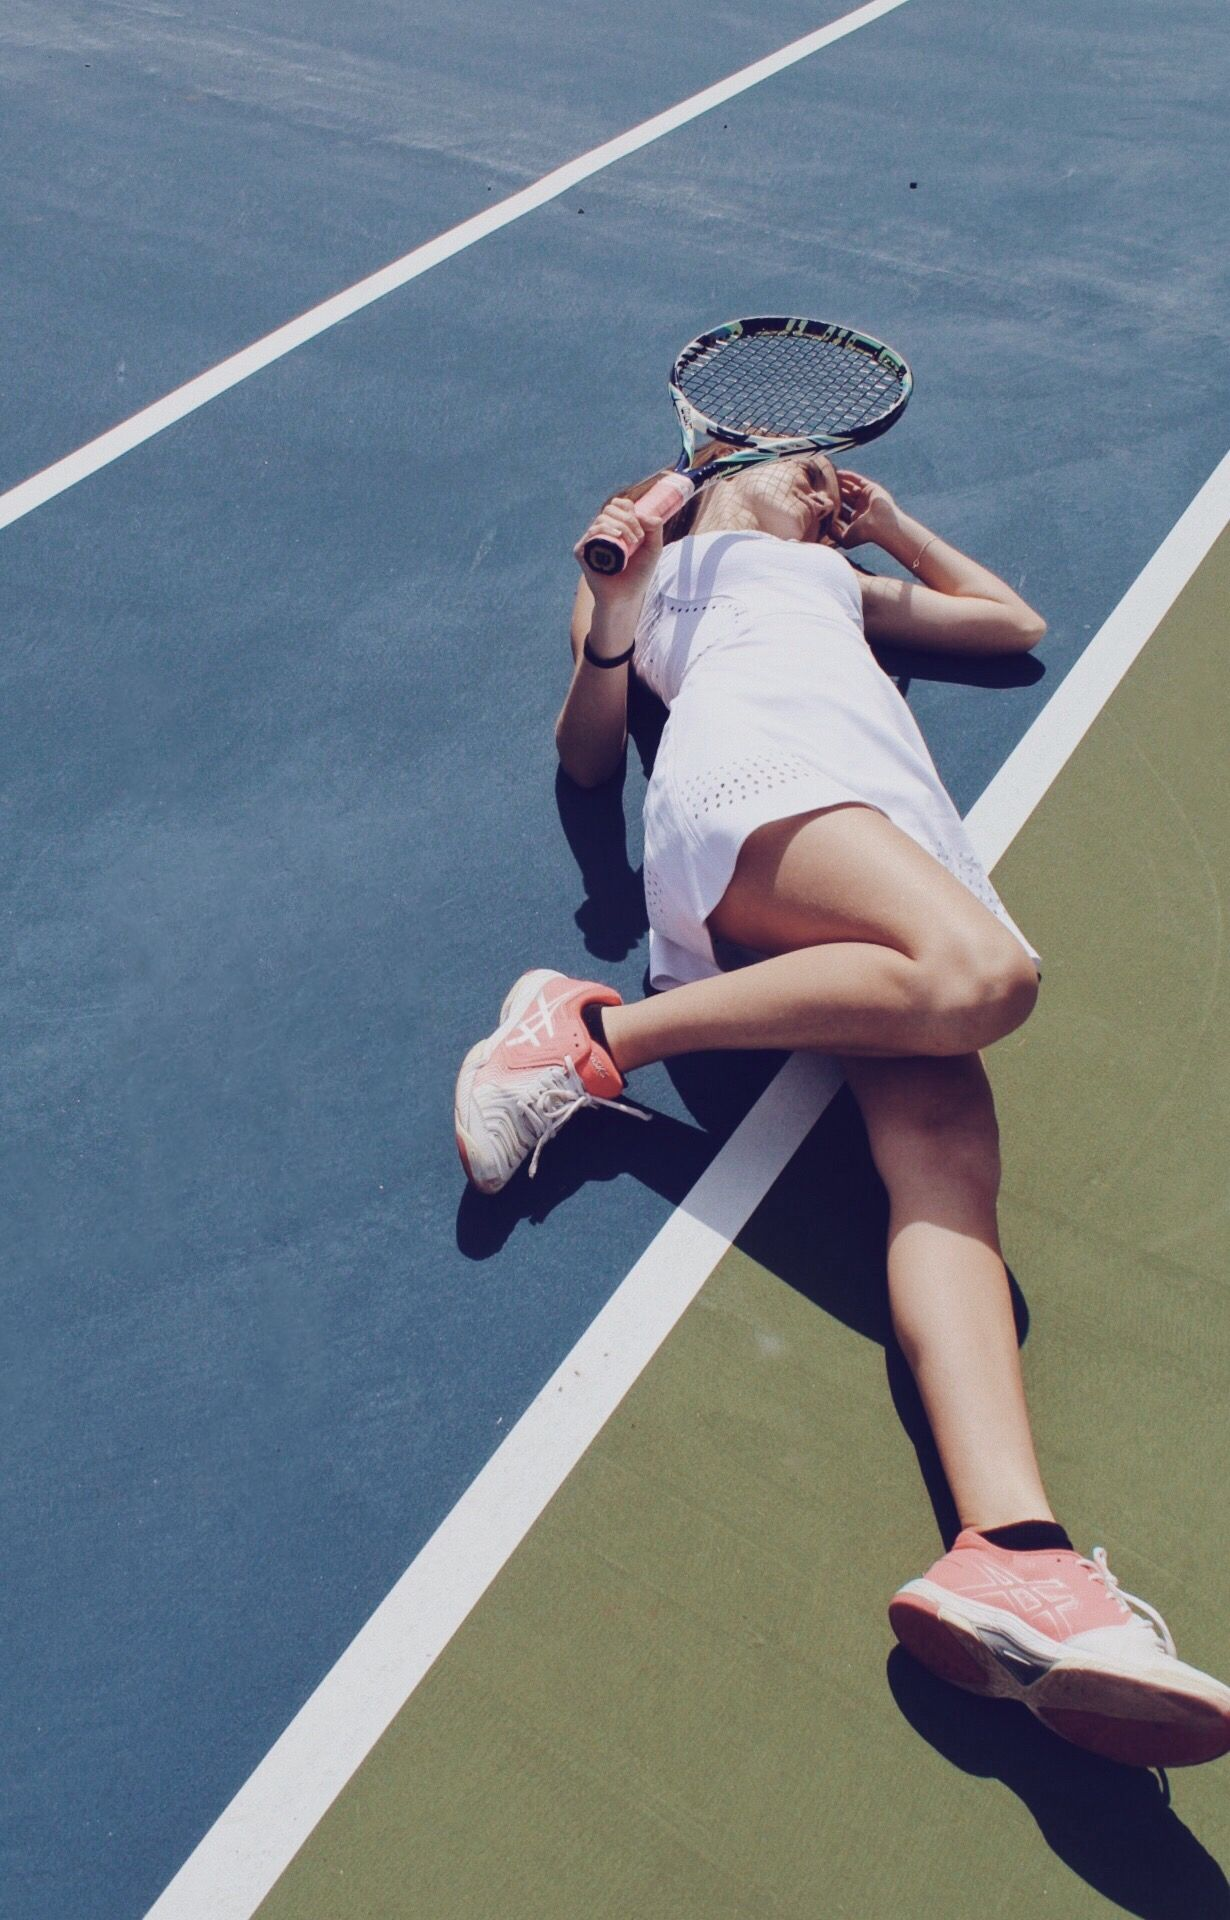 Tennis Court Photoshoot In 2020 Tennis Court Photoshoot Tennis Pictures Tennis Photography